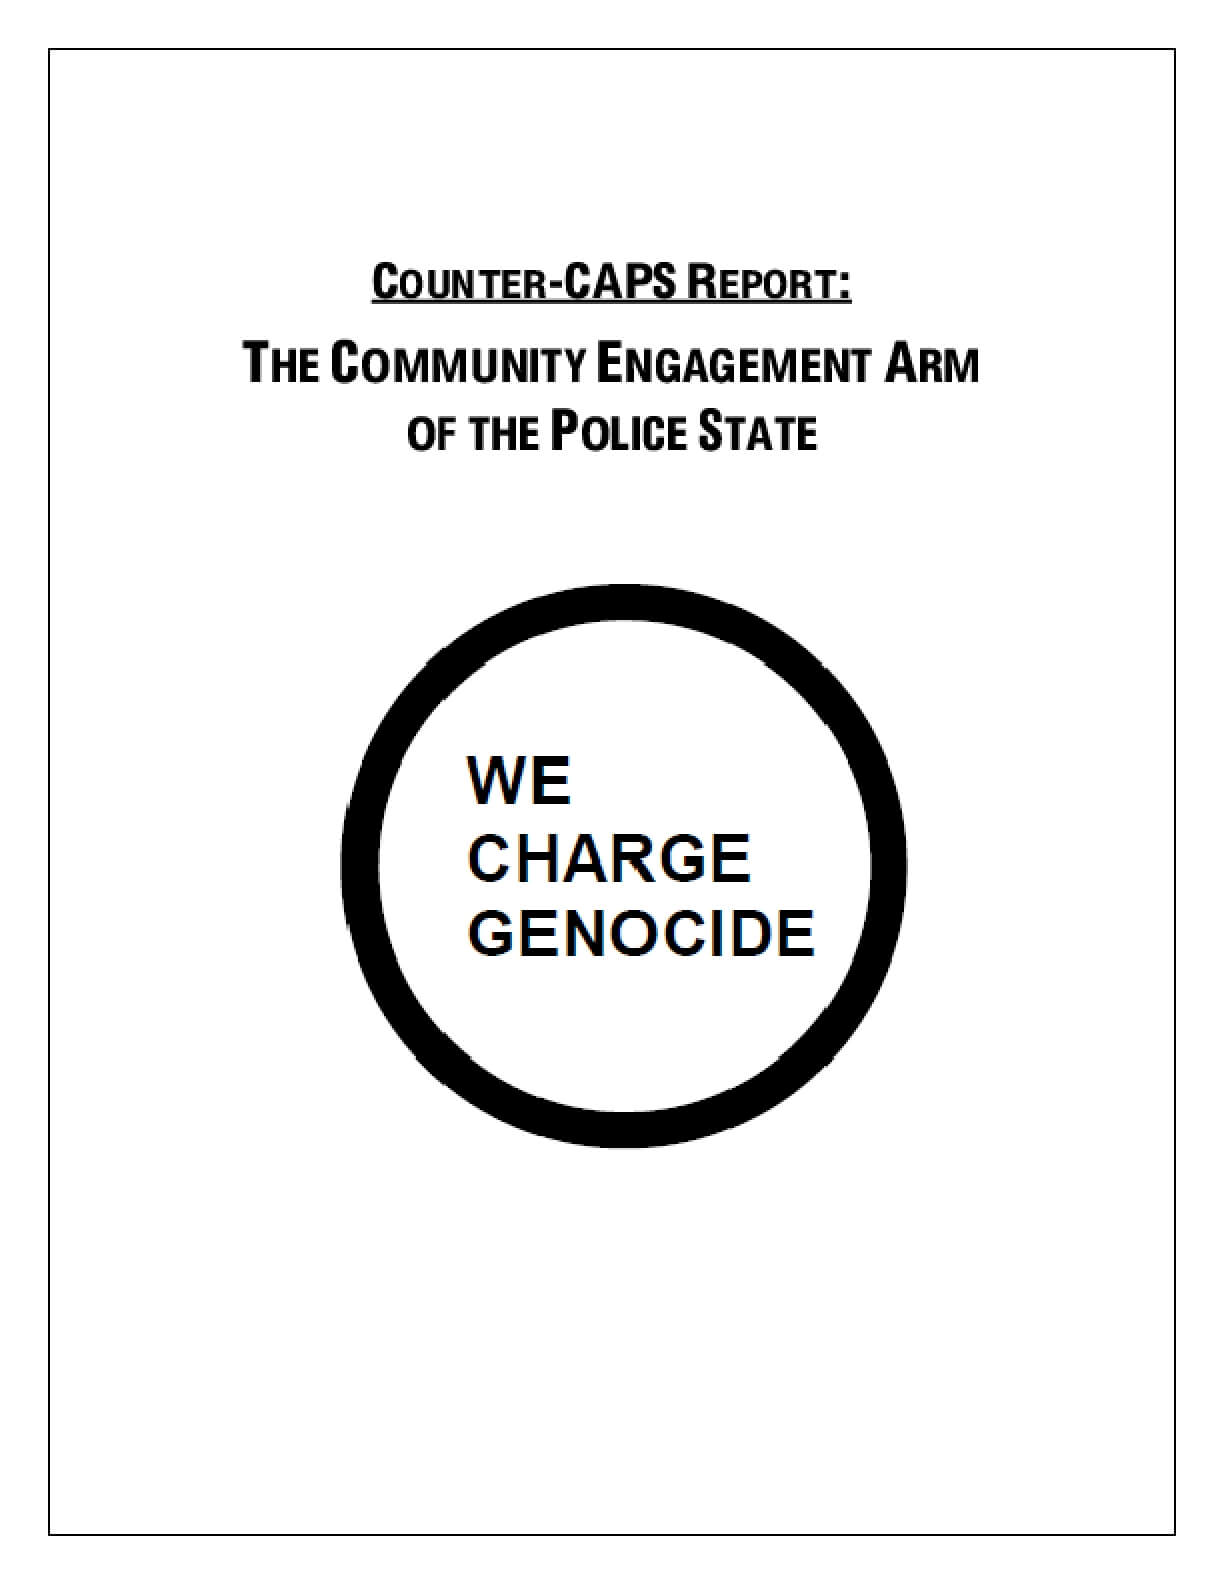 Counter-CAPS Report: the Community Engagement Arm of the Police State